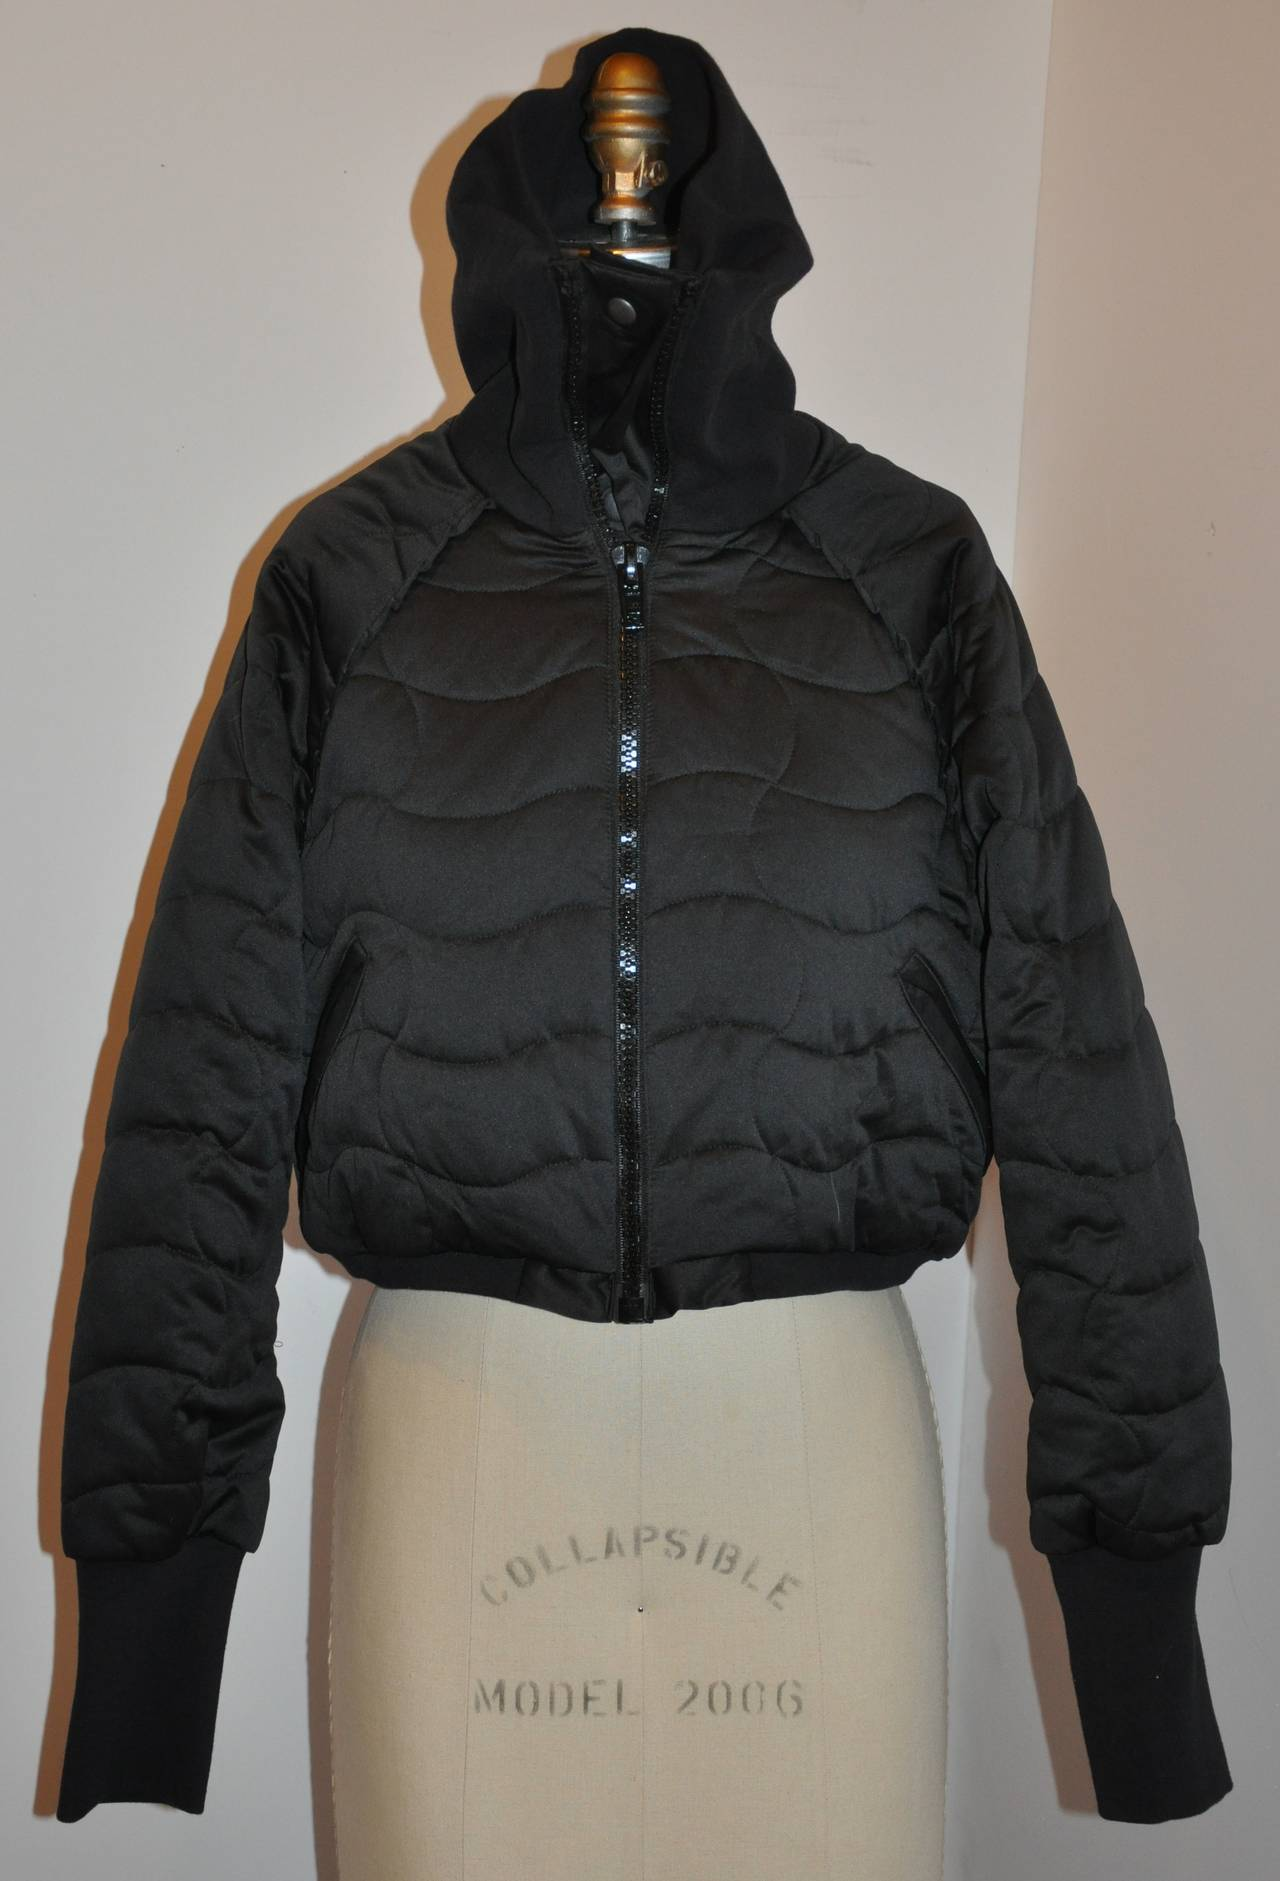 Stella McCartney Black High-Collar Quilted Cropped Puffer Zipper Jacket In Excellent Condition For Sale In New York, NY